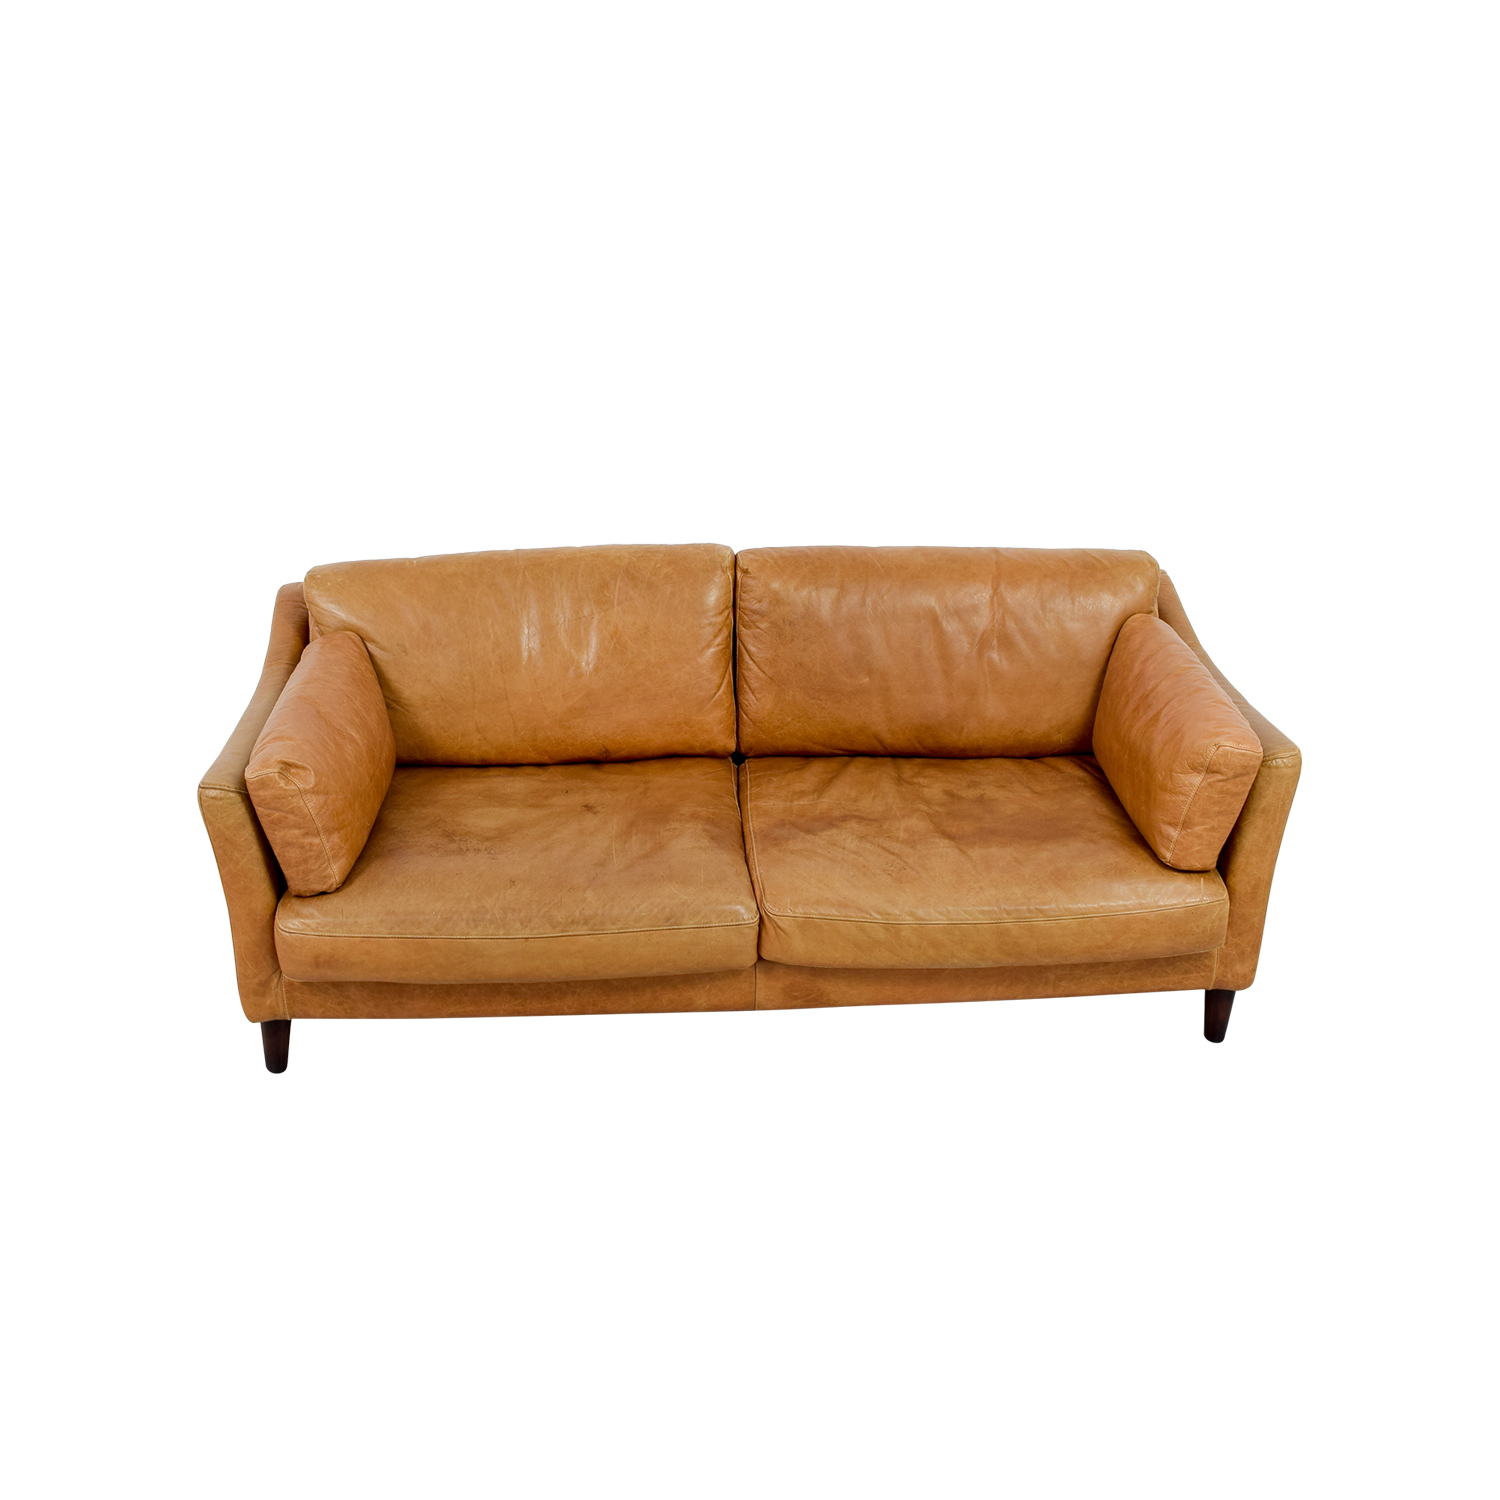 Marina Homes Marina Homes Leather Sofa on sale